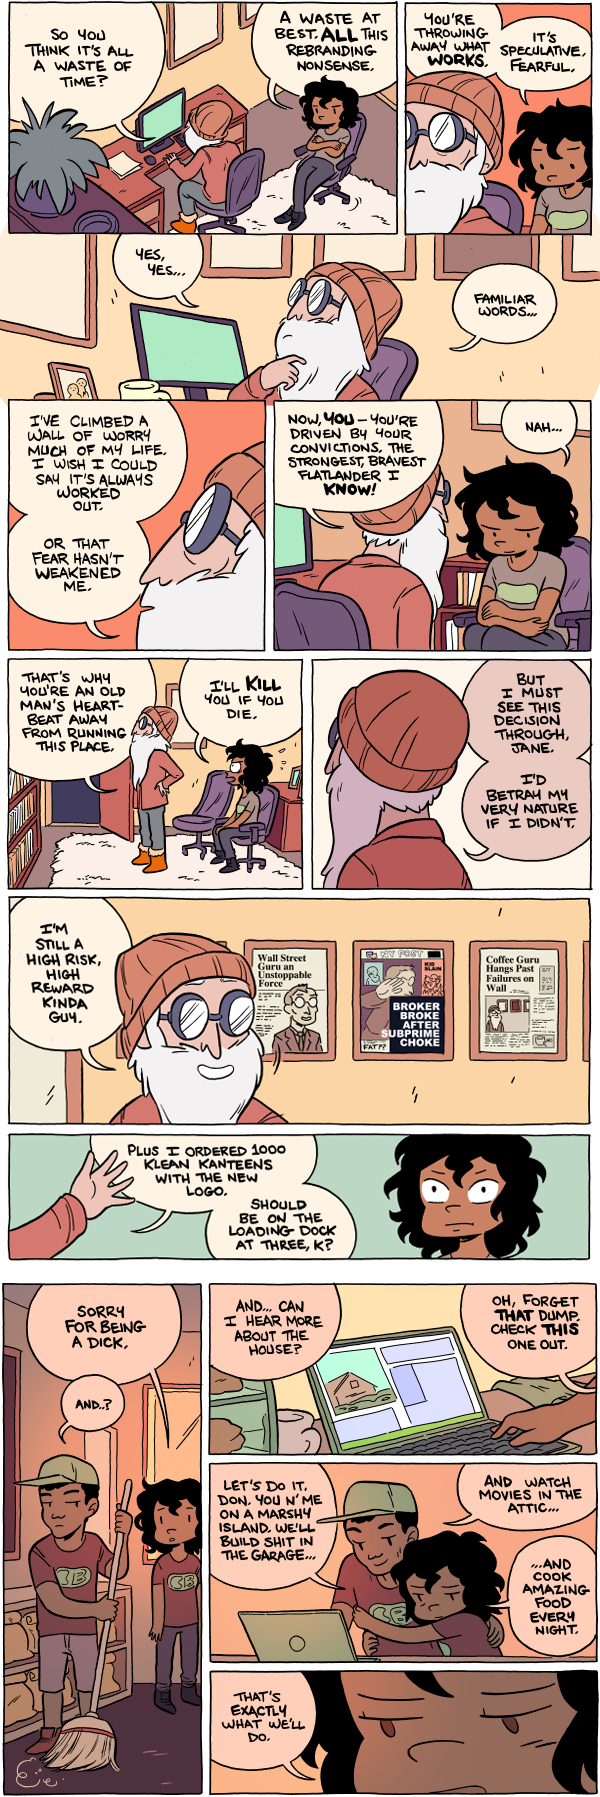 #813 + 814 – forget that dump